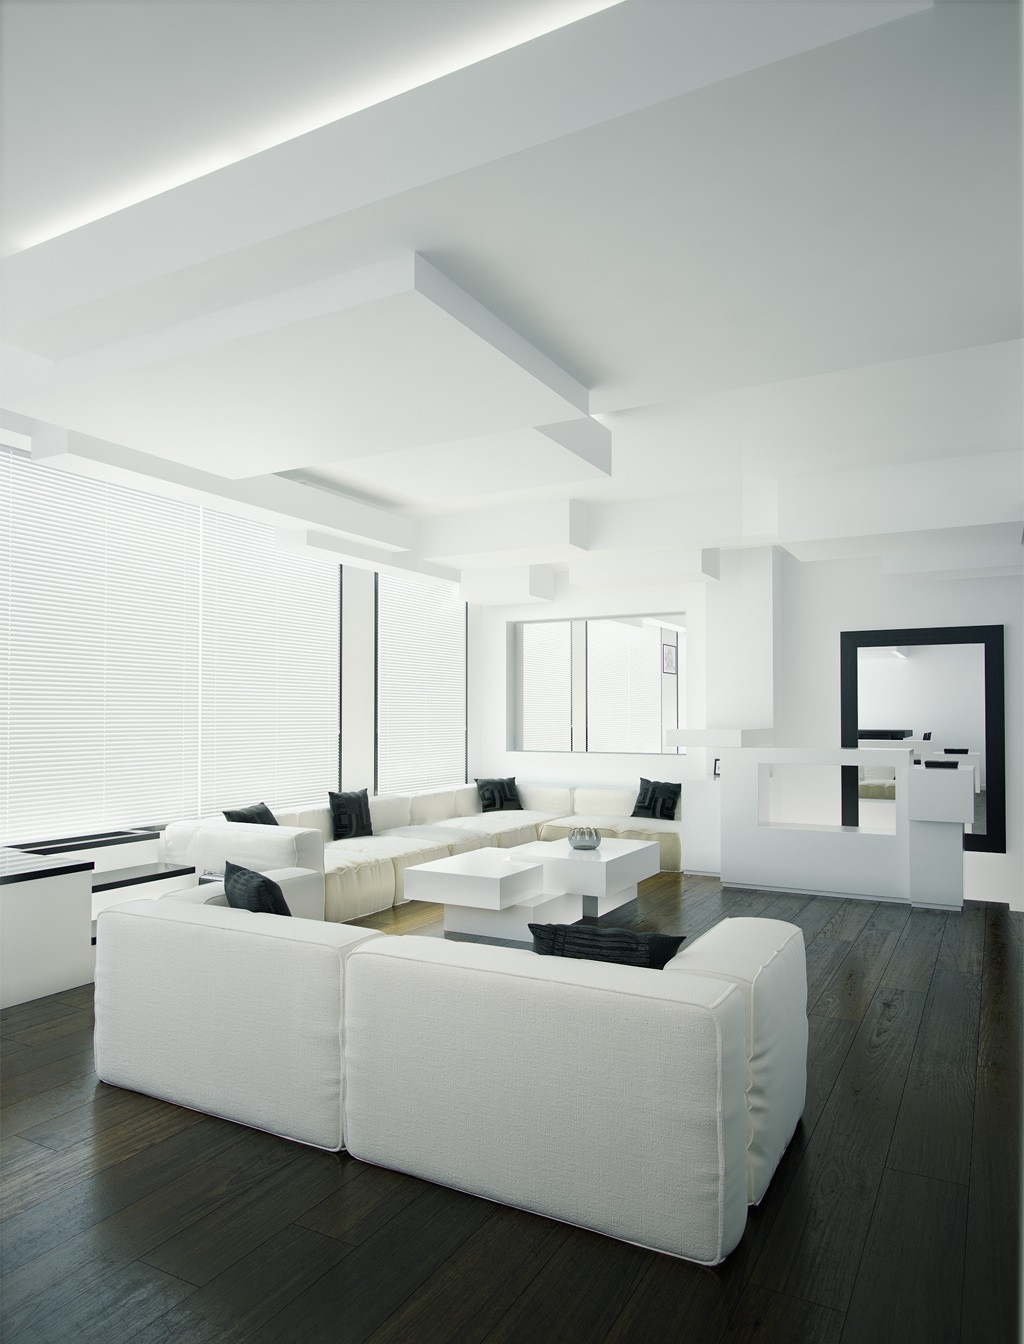 White On White Living Room Ideas At The House Black And White Living Room Interior